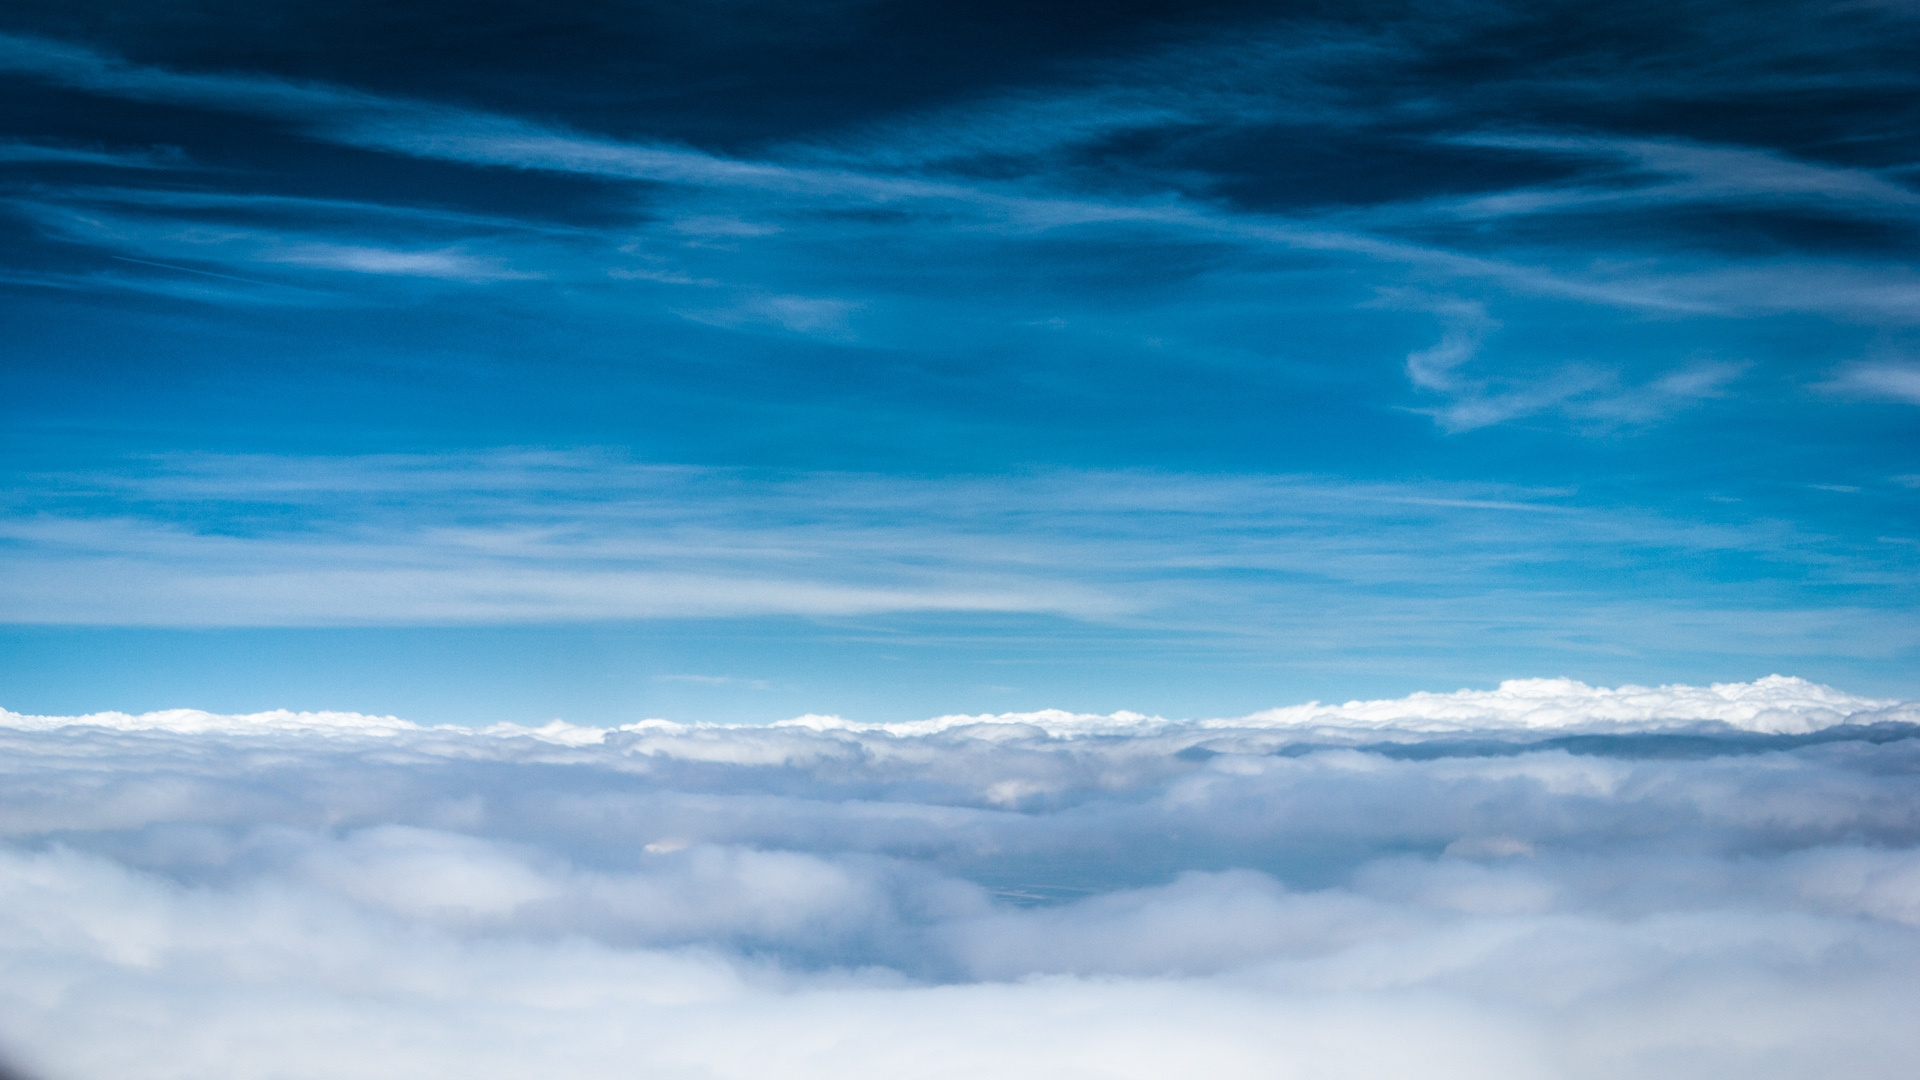 Download Wallpaper 1920x1080 Clouds Sky Blue Shades Lines Air